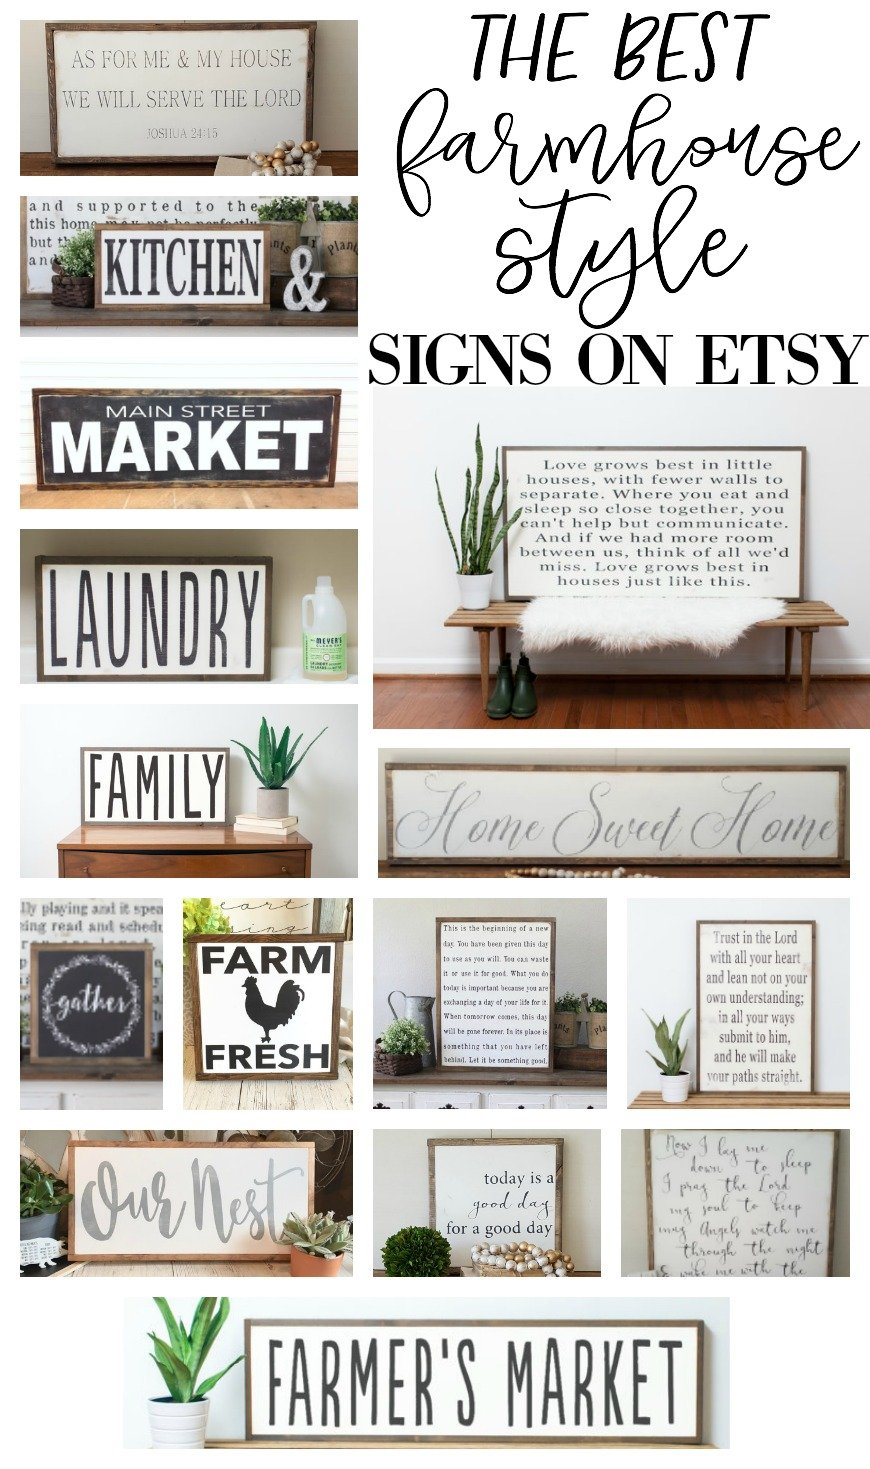 The Best Farmhouse Style Signs on Etsy